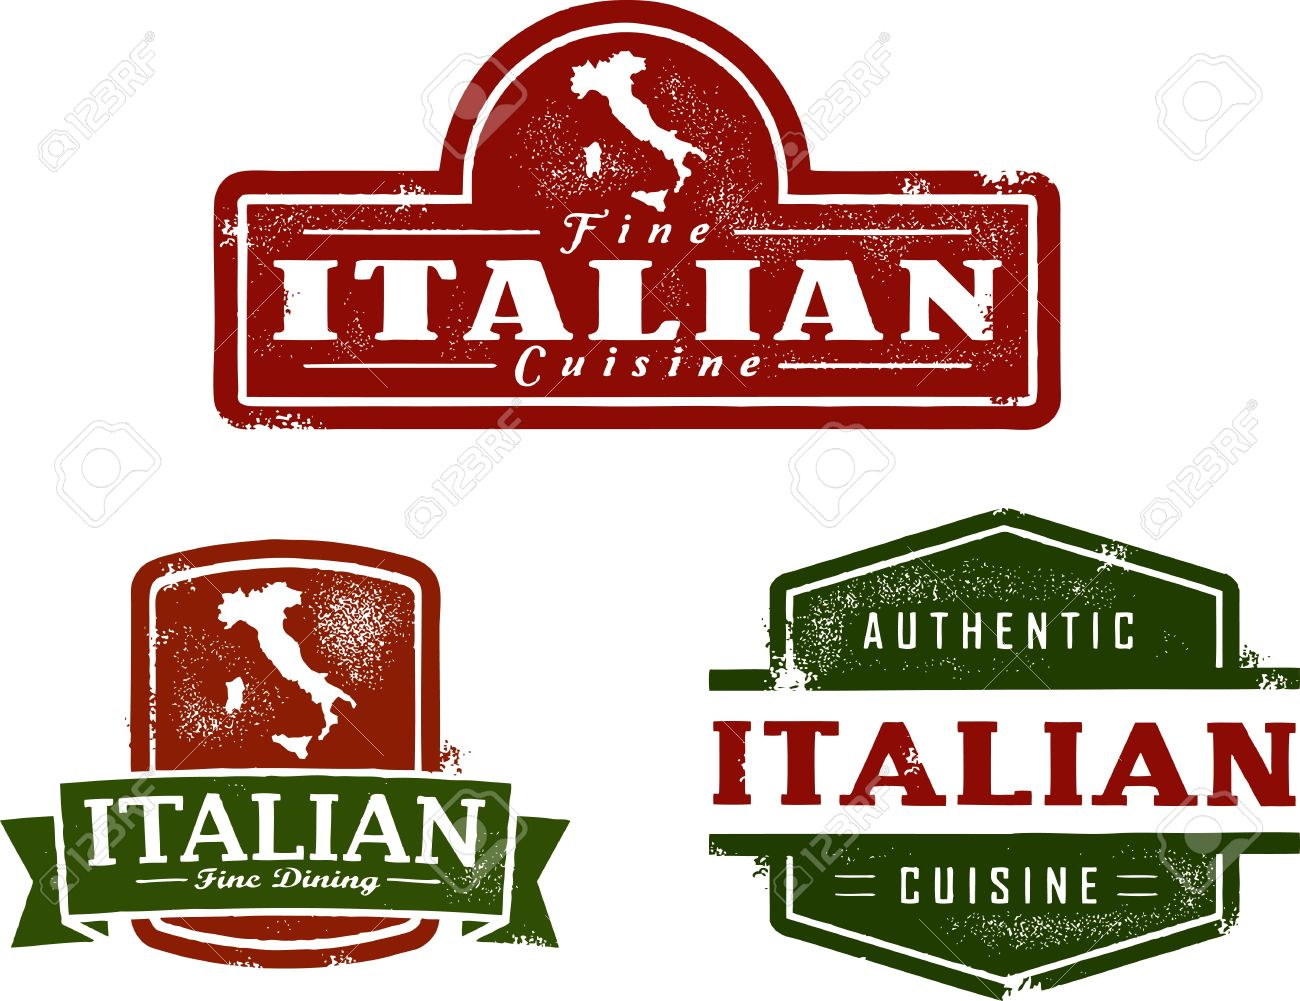 For restaurant pictures graphics illustrations clipart photos - Vintage Italian Restaurant Graphics Stock Vector 12495642